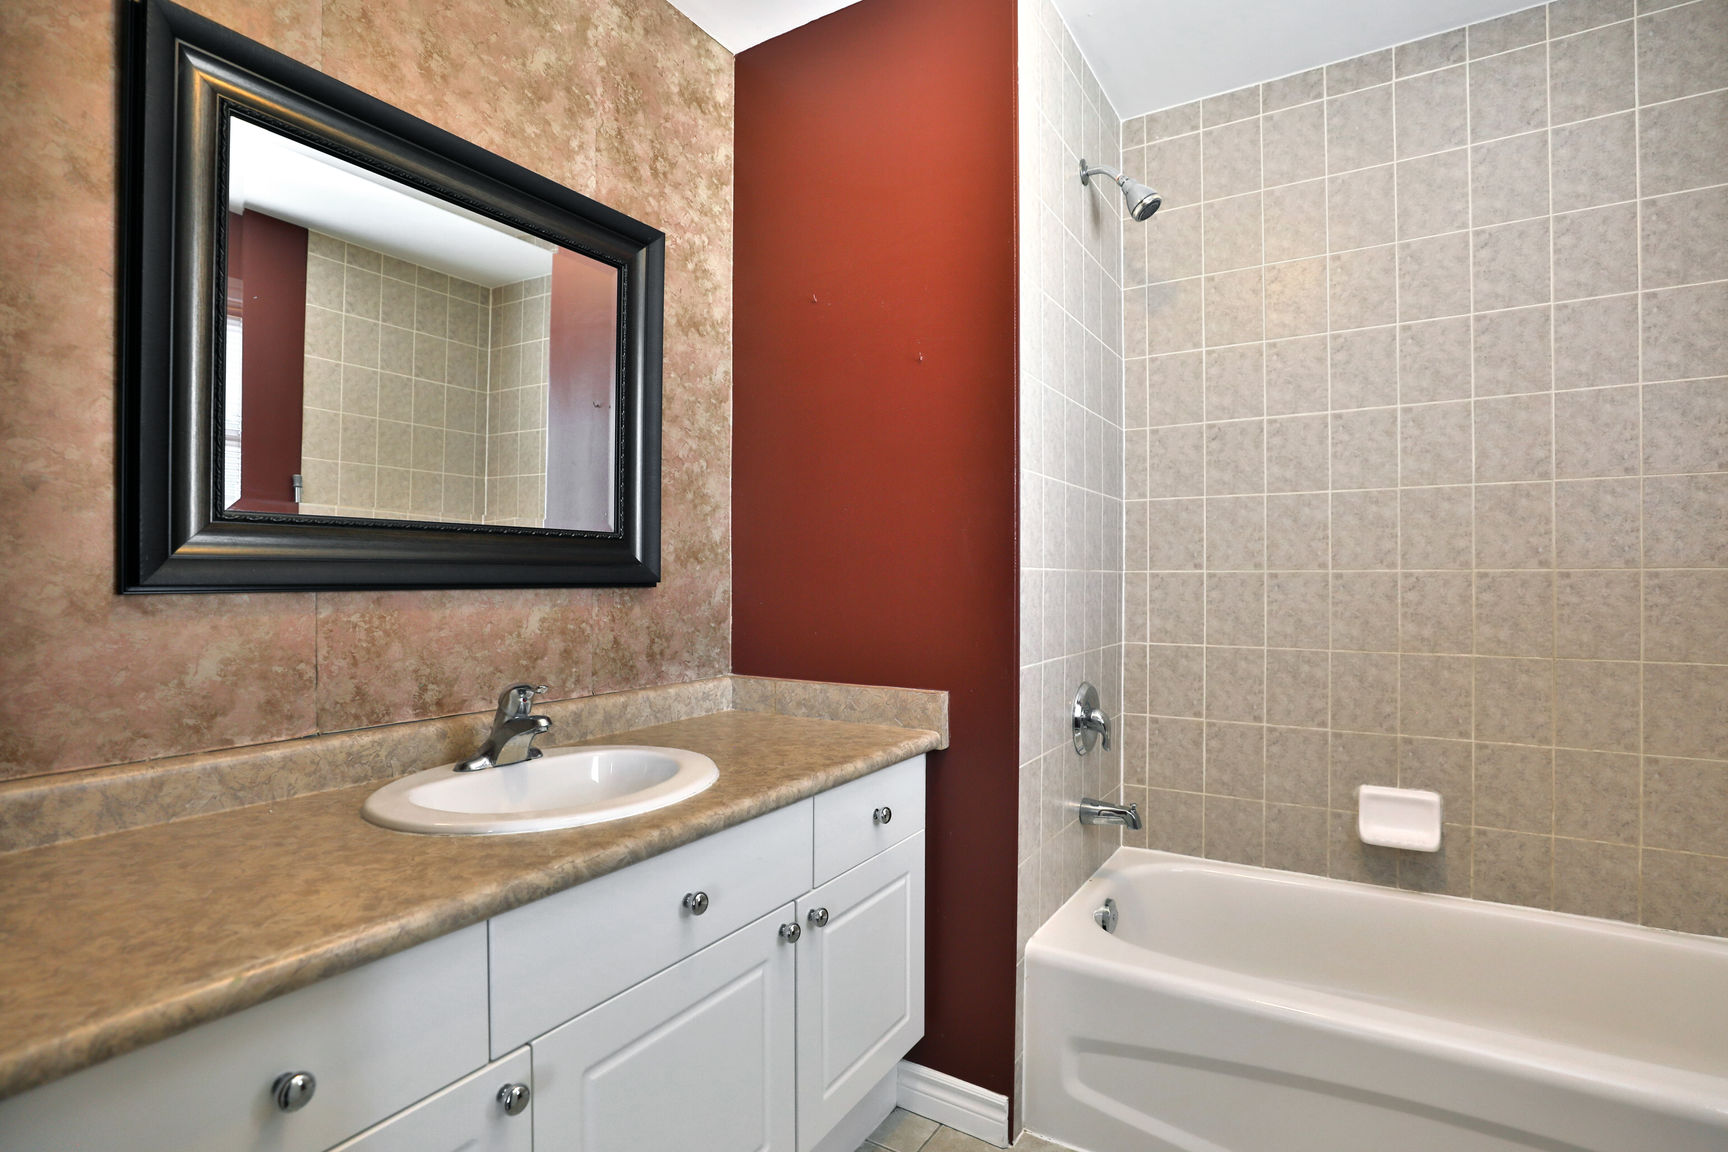 Mount Hope 119 Thames master ensuite - Recently SOLD in Mount Hope